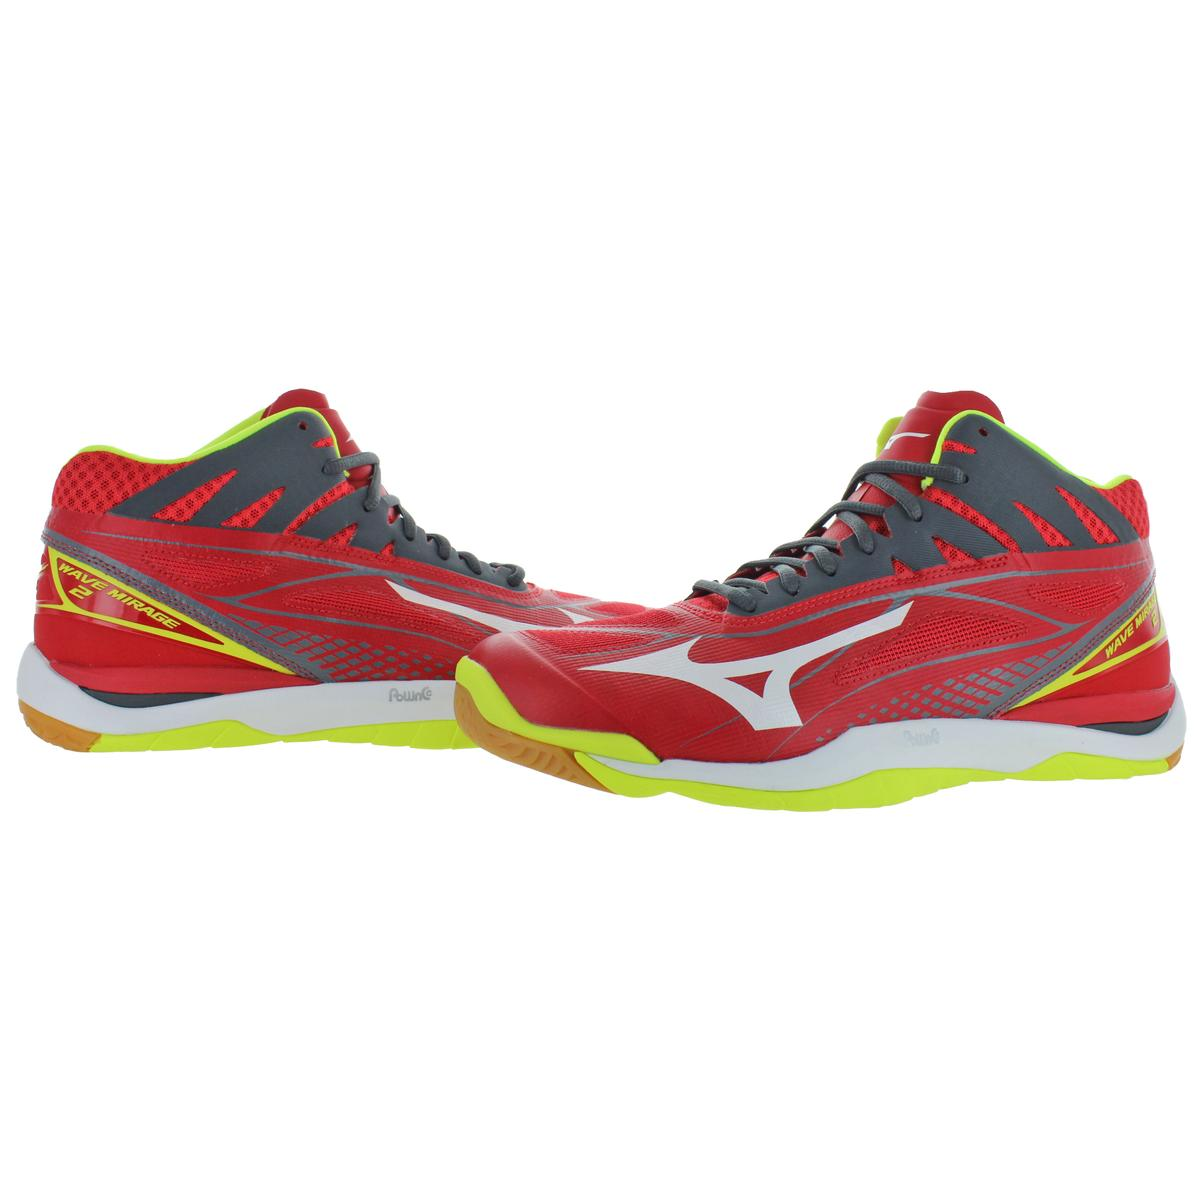 Mizuno-Mens-Wave-Mirage-2-Mid-Lace-Up-Mid-Top-Handball-Sneakers-Shoes-BHFO-9977 thumbnail 5